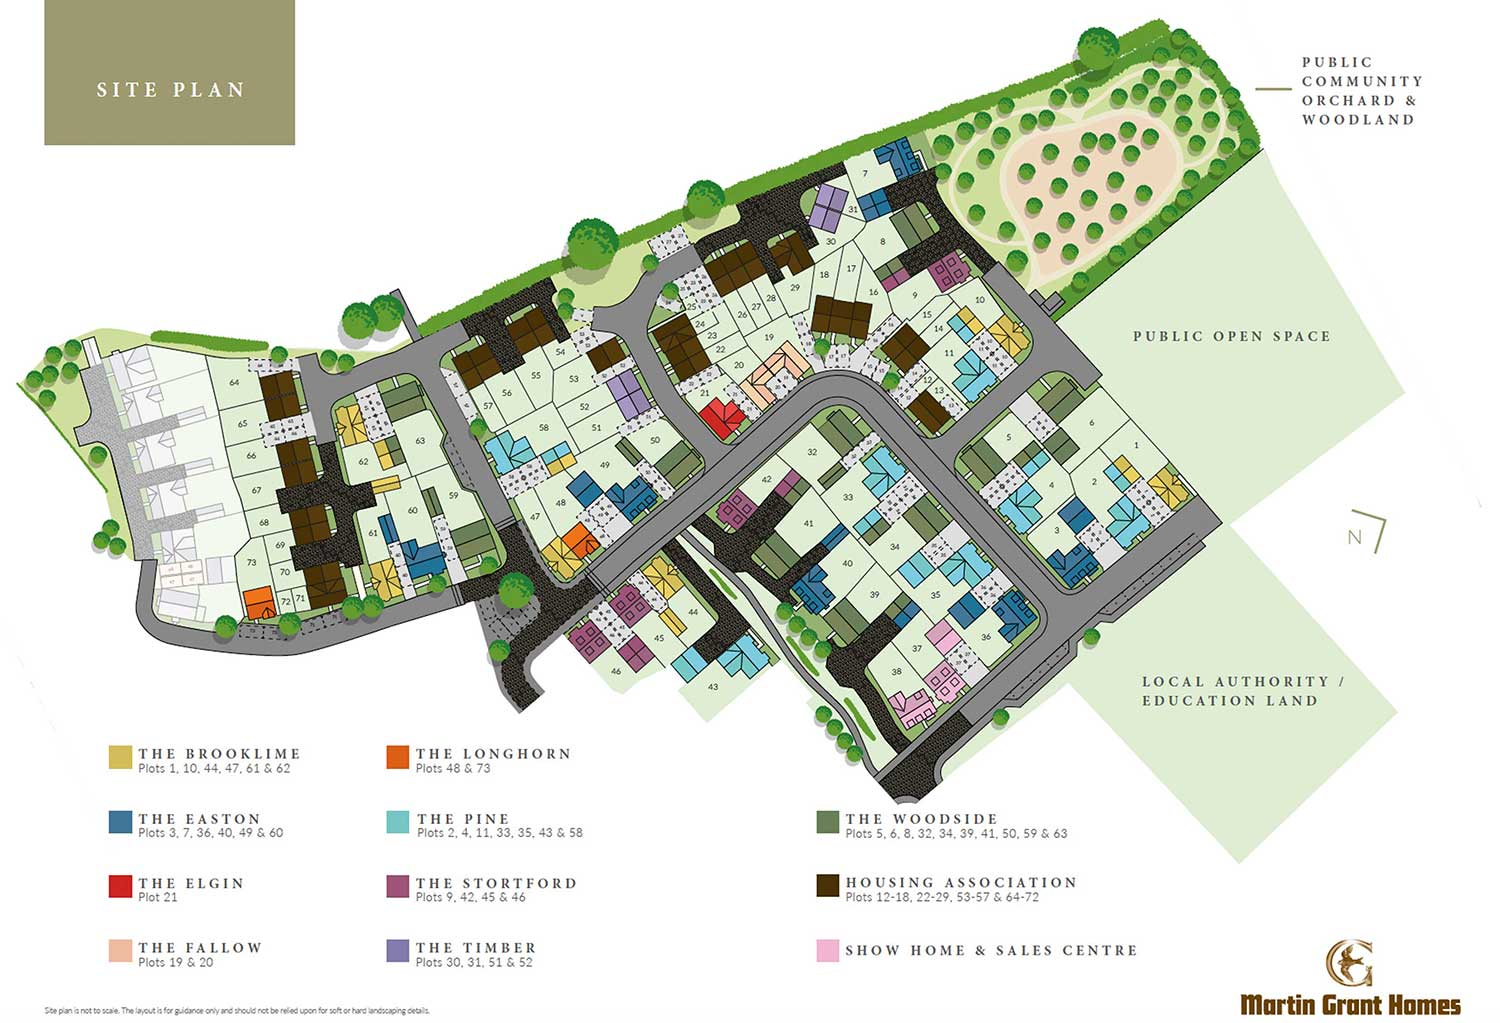 Plot 31 – The Timber Siteplan